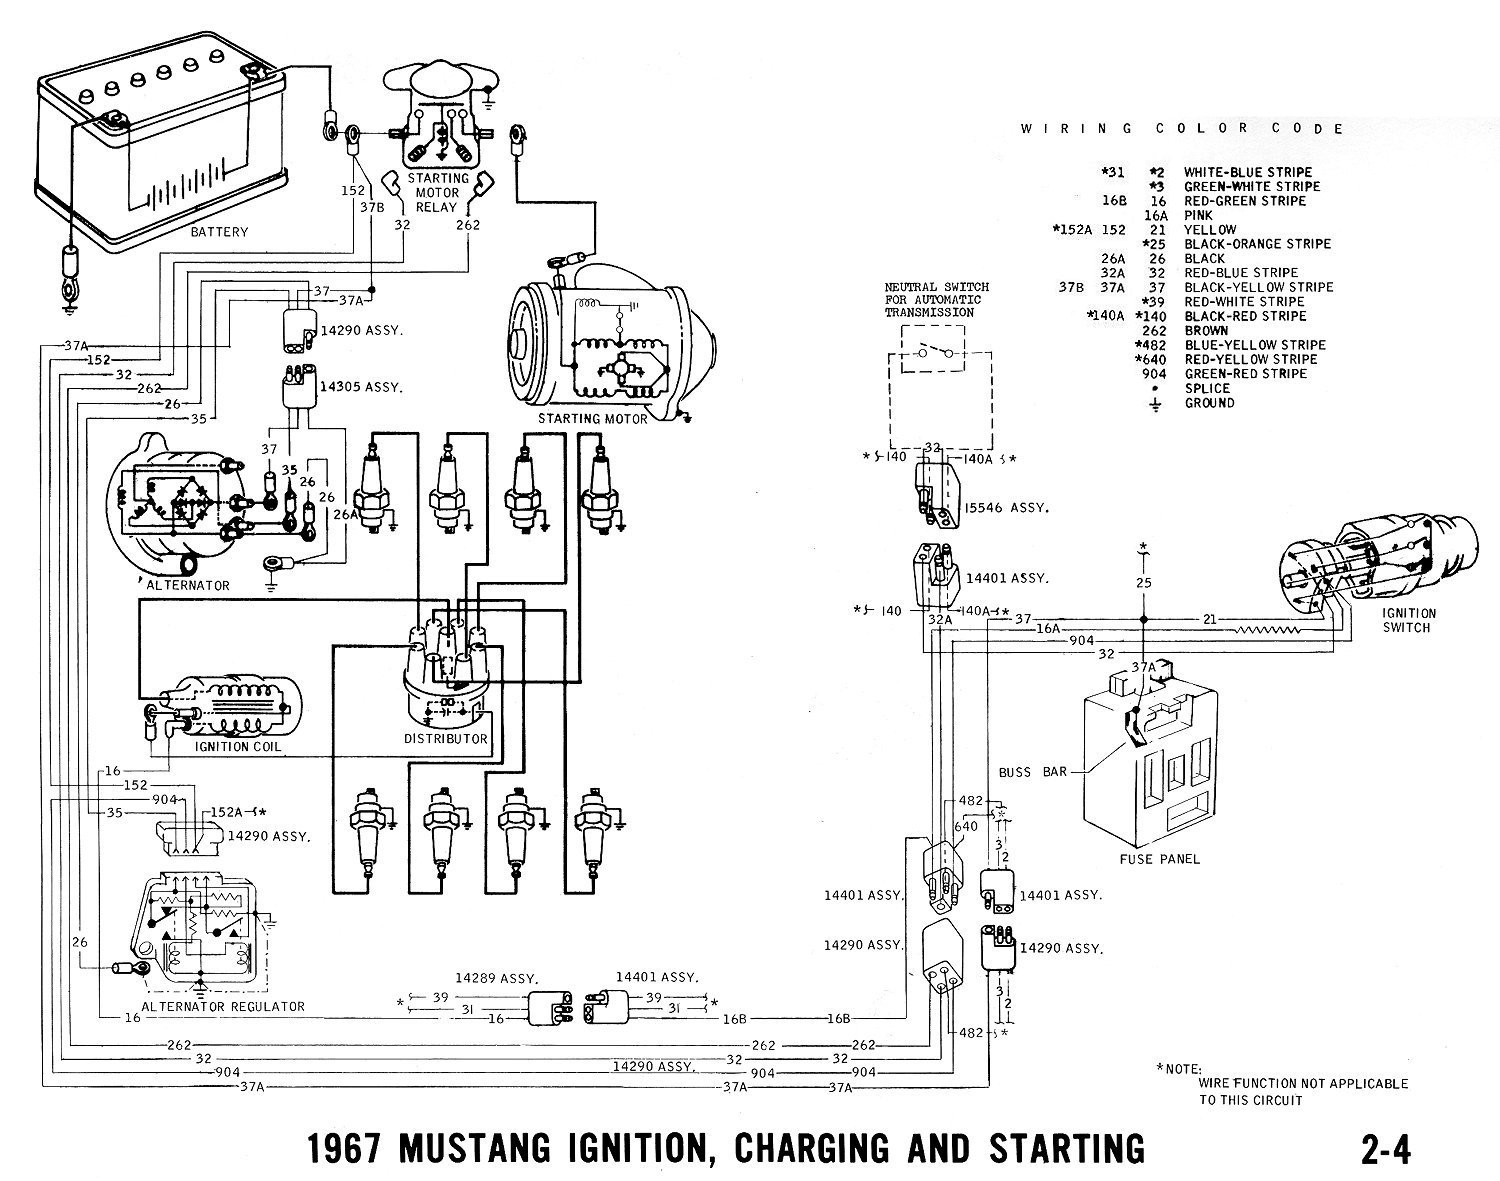 1968 Mustang Factory Tach Wiring Go Diagram 67 Pontiac Manual E Books 68